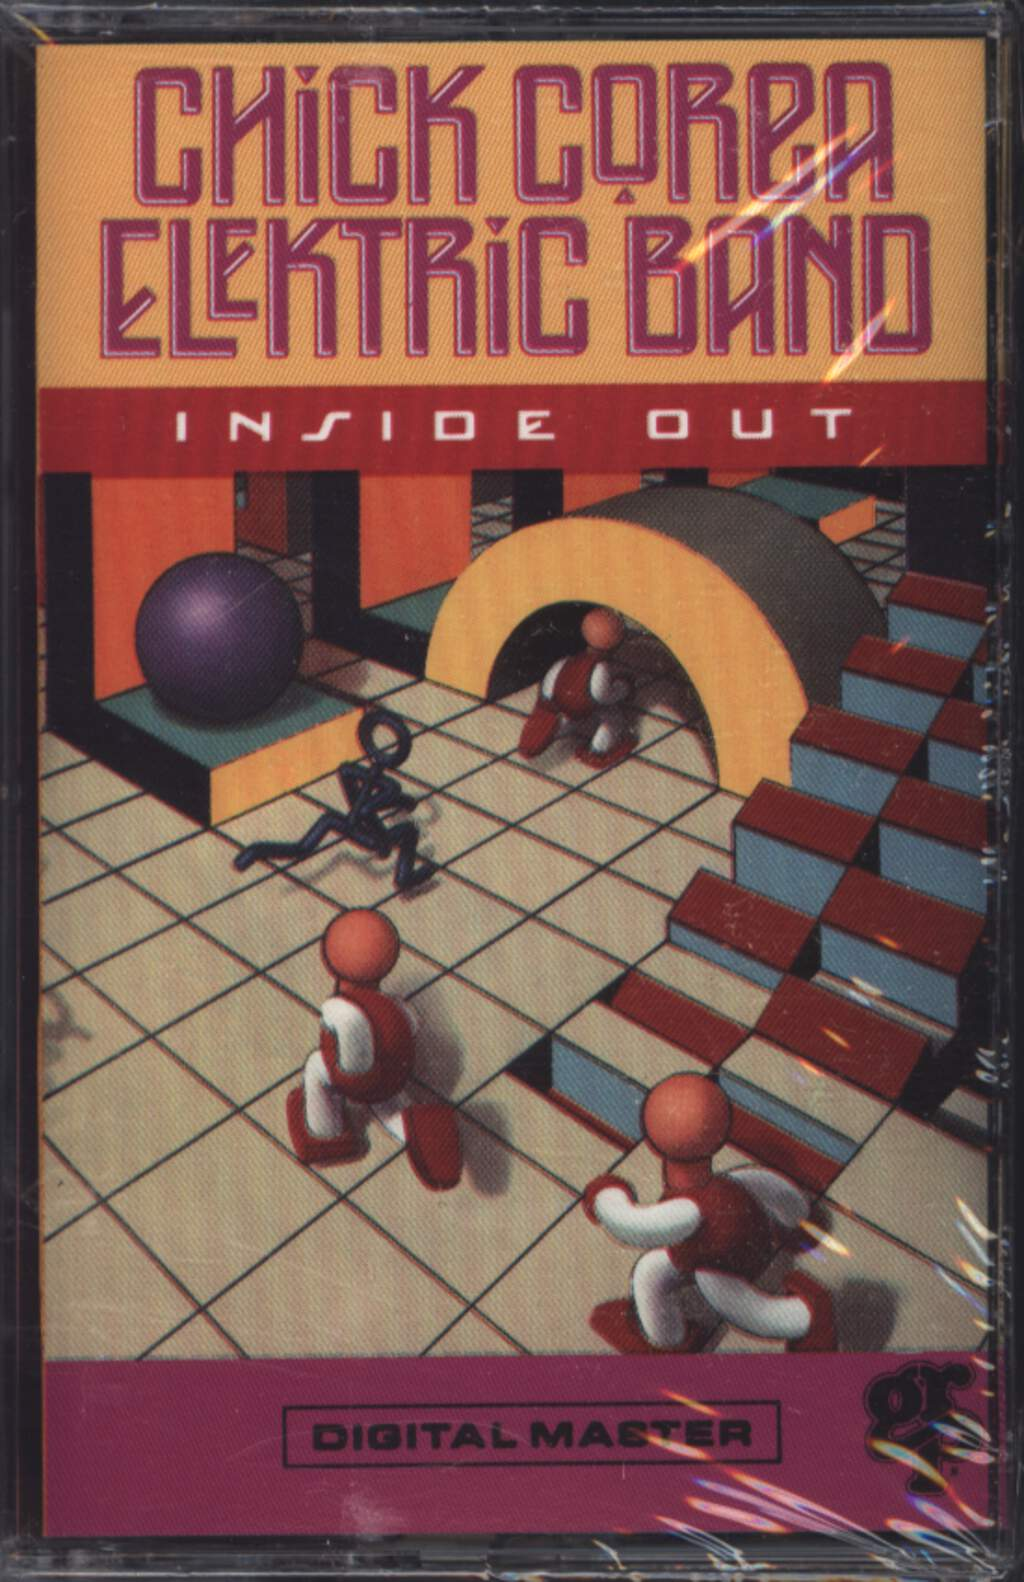 The Chick Corea Elektric Band: Inside Out, Compact Cassette